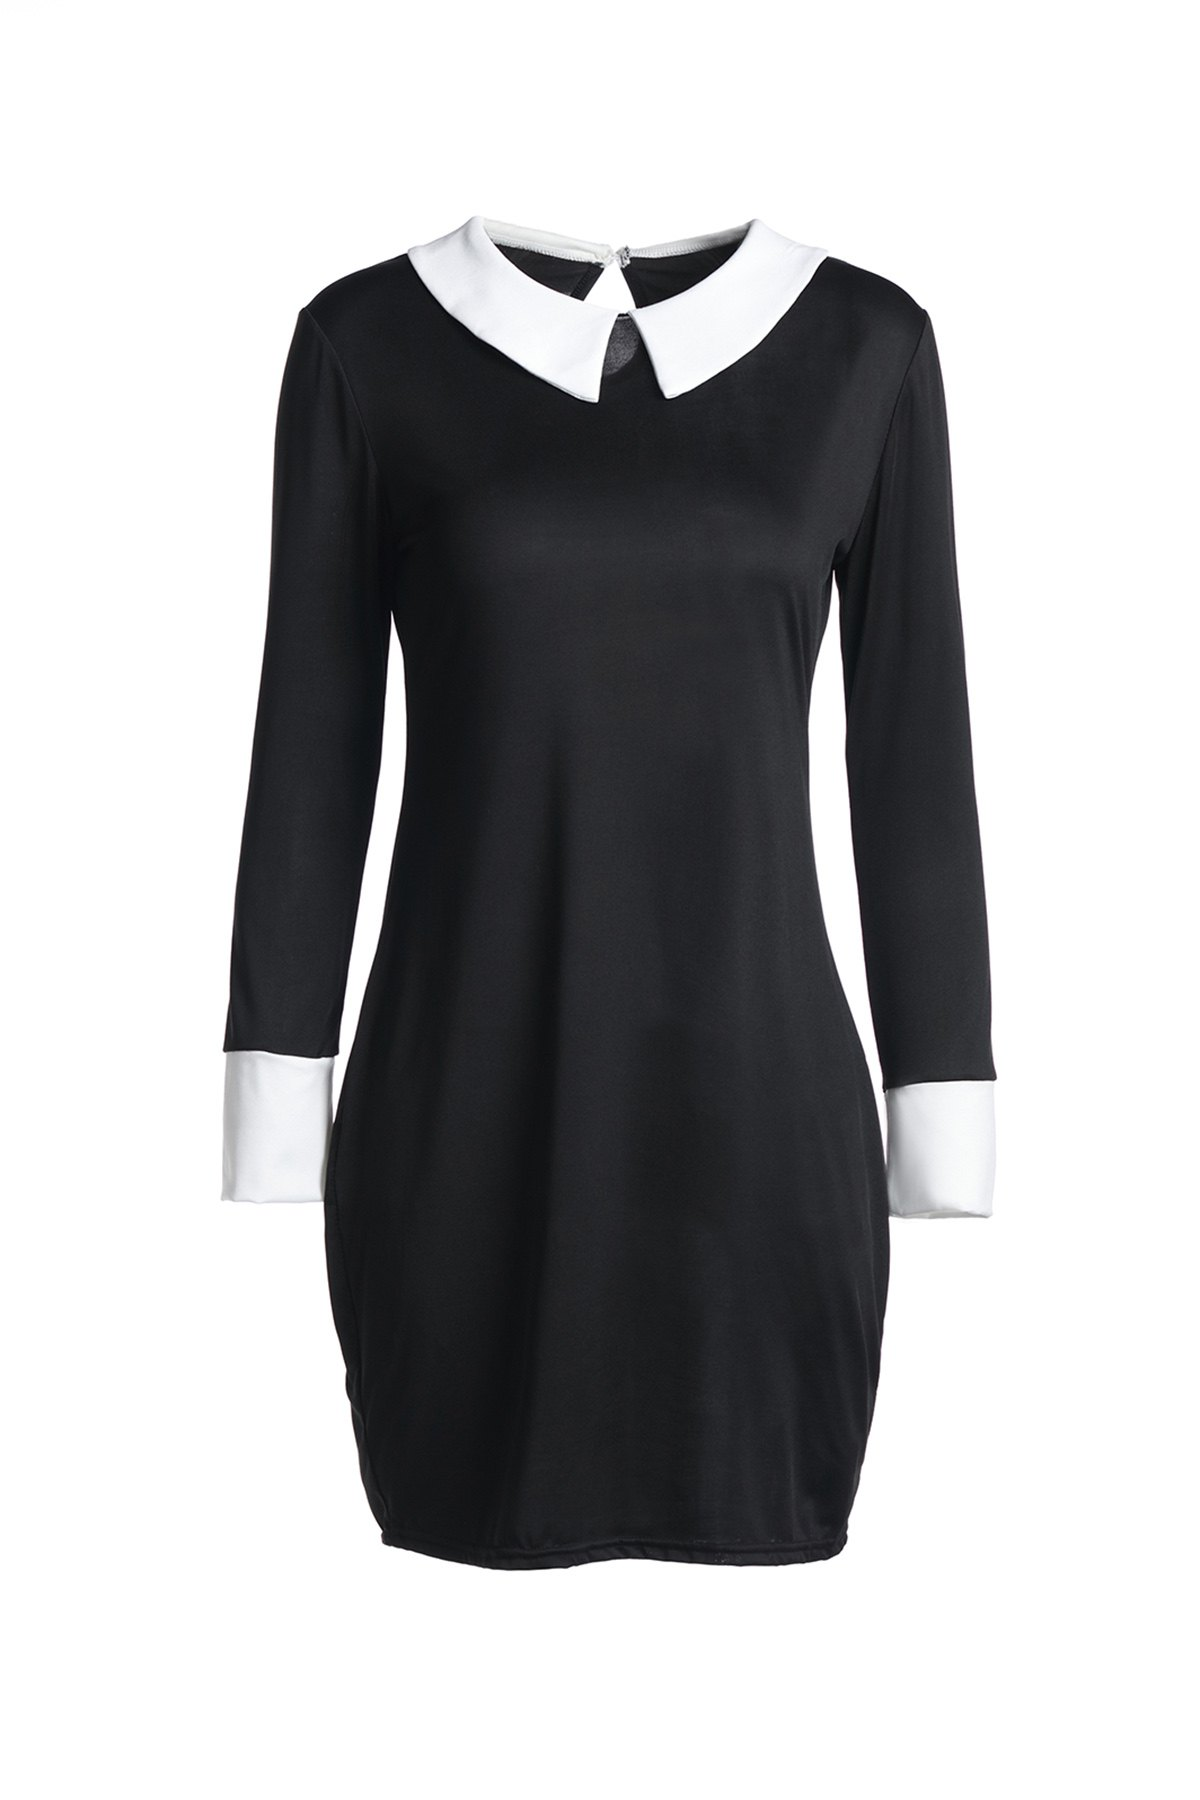 Fashion 3/4 Sleeve Flat Collar Hit Color Women's Dress - BLACK L